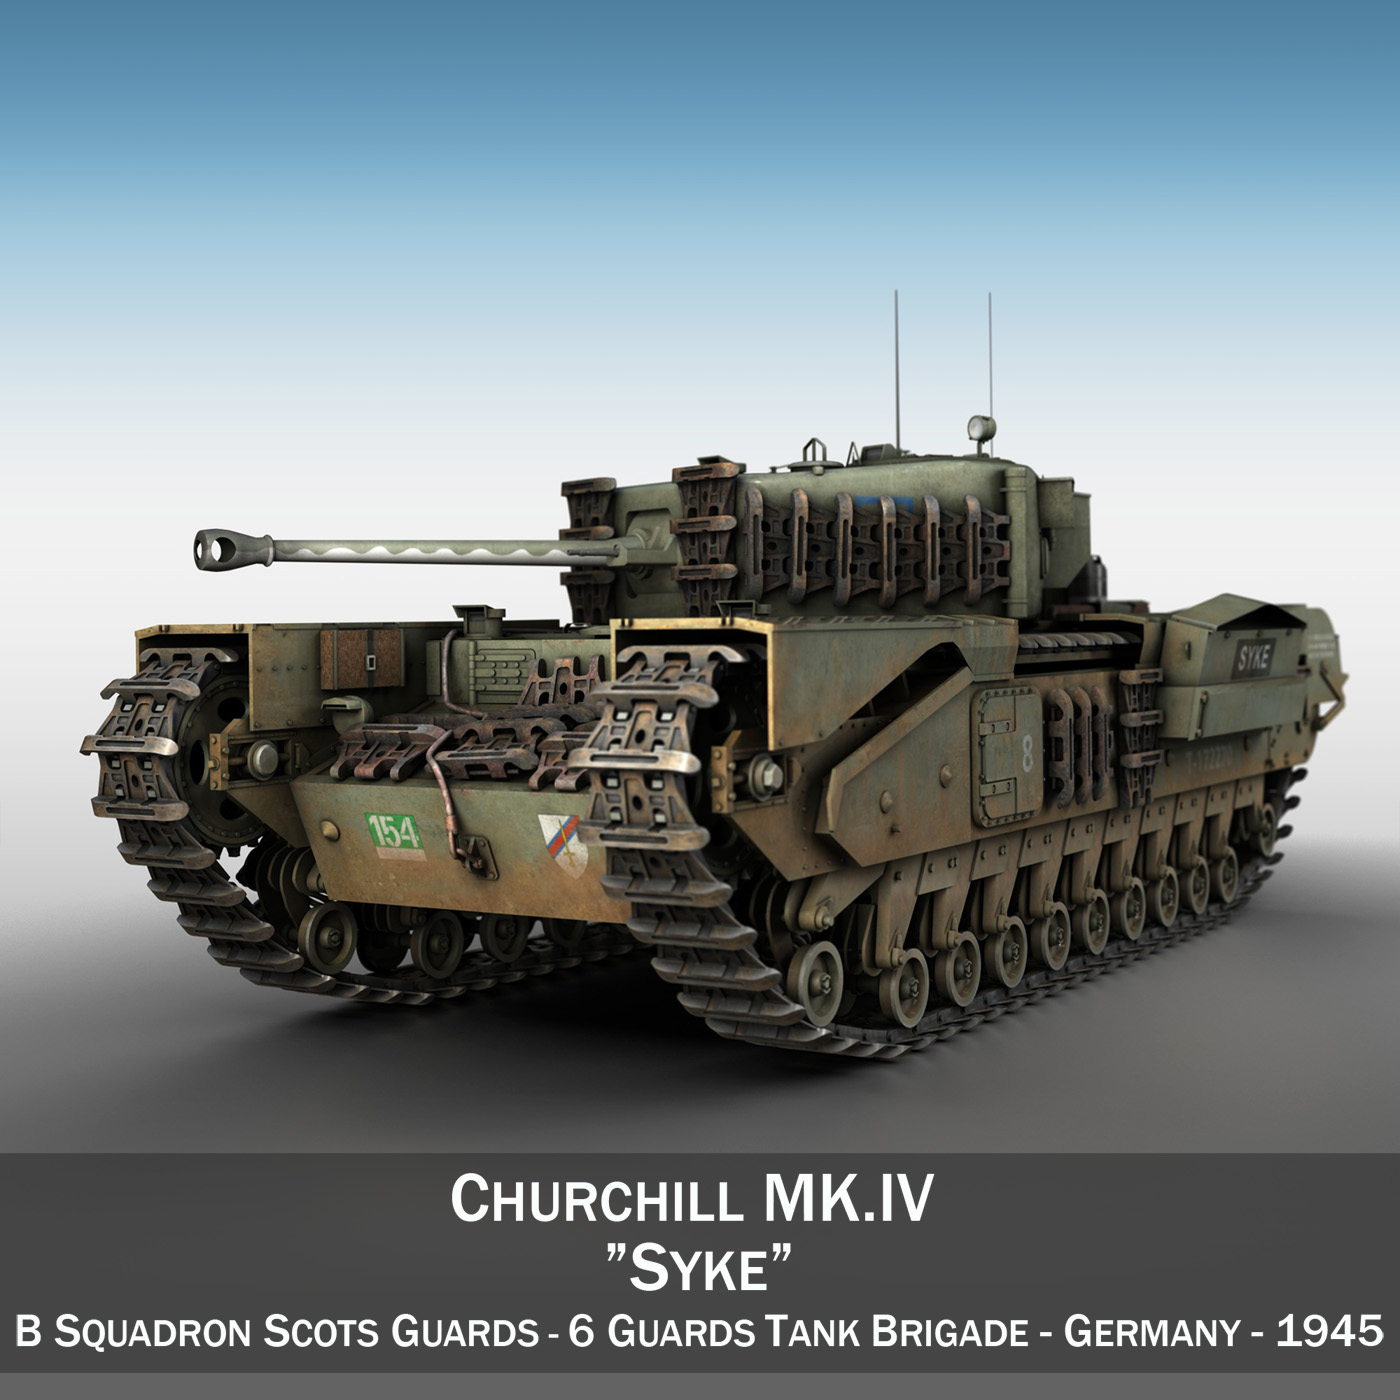 churchill mk iv - syke 3d model 3ds fbx c4d lwo obj 272993